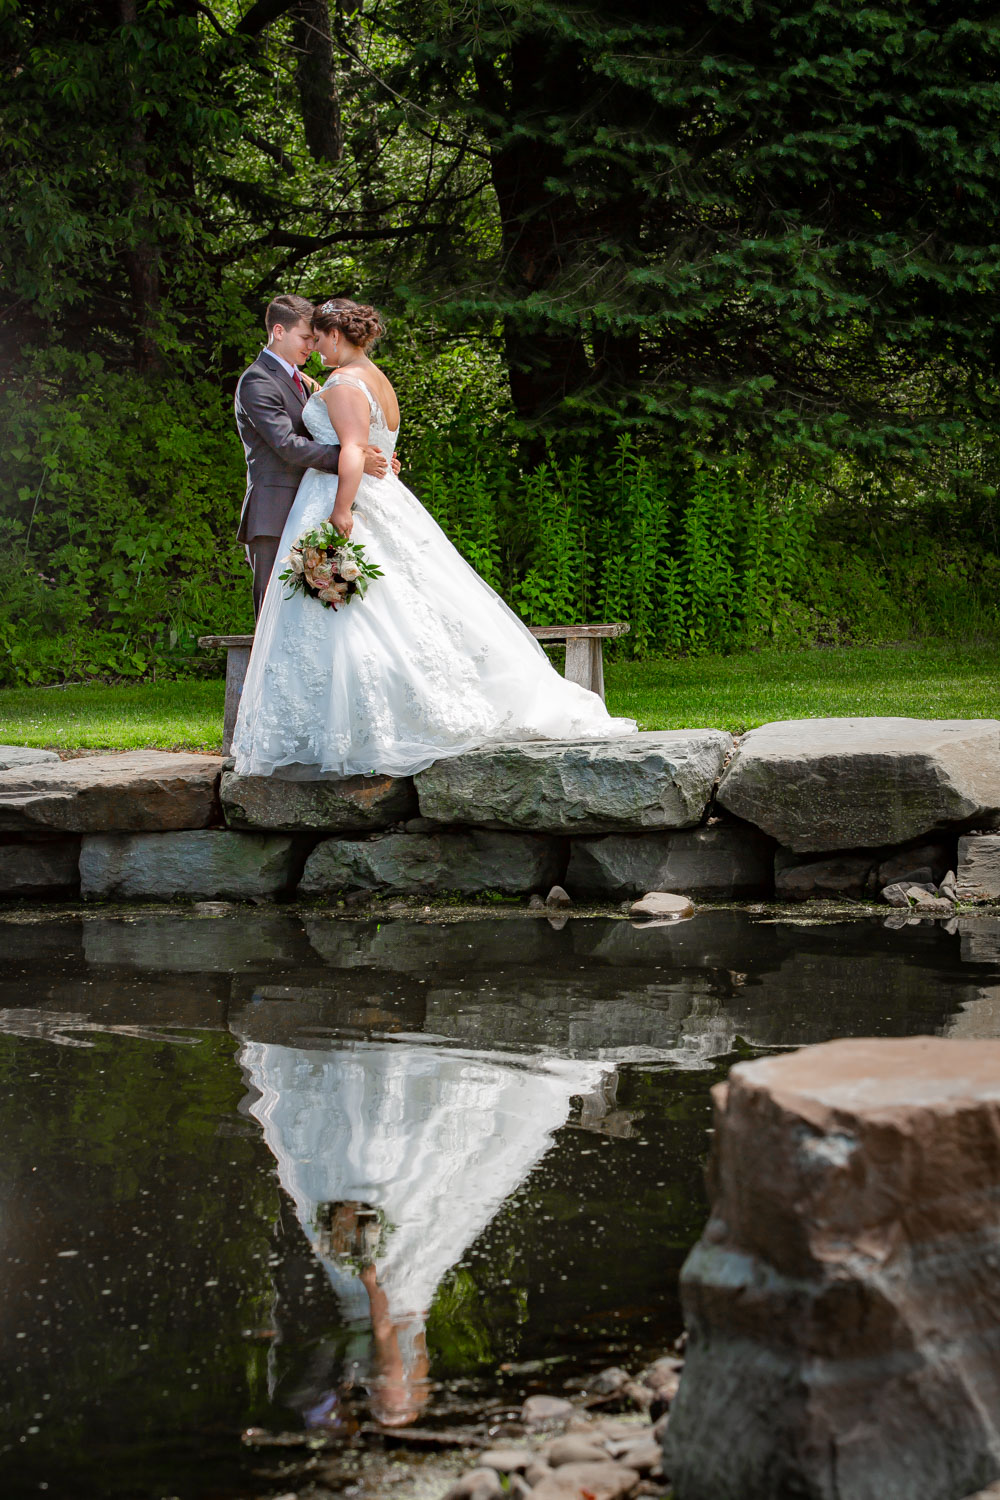 Finger-Lakes-Wedding-Photographer-Joe-Hy-Owego-NY-7274.jpg